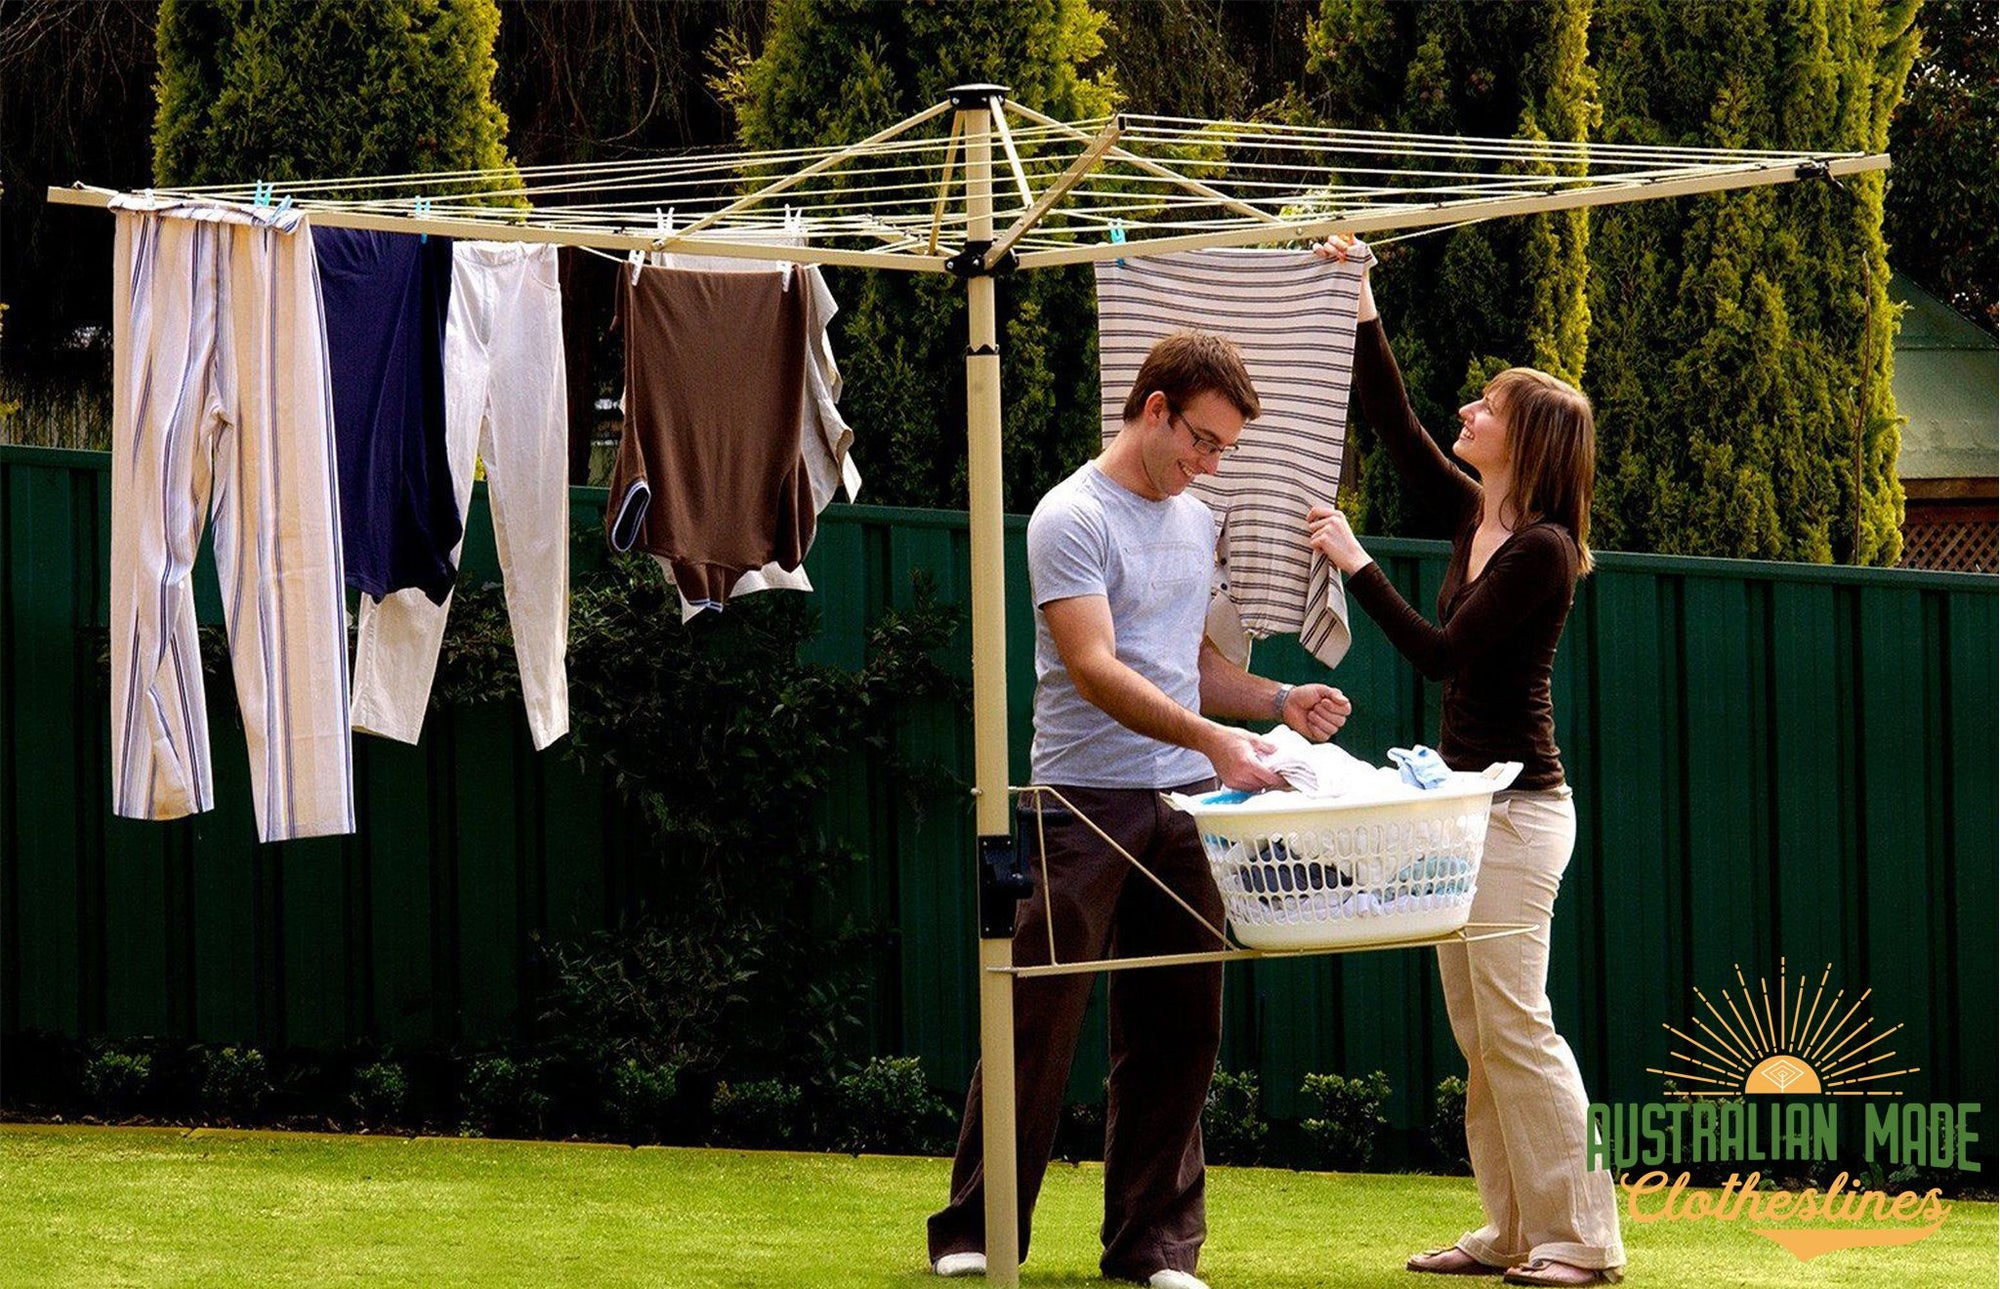 Austral Foldaway 45 Rotary Clothesline - Suitable for 3- 4 People - Australian Made Clotheslines